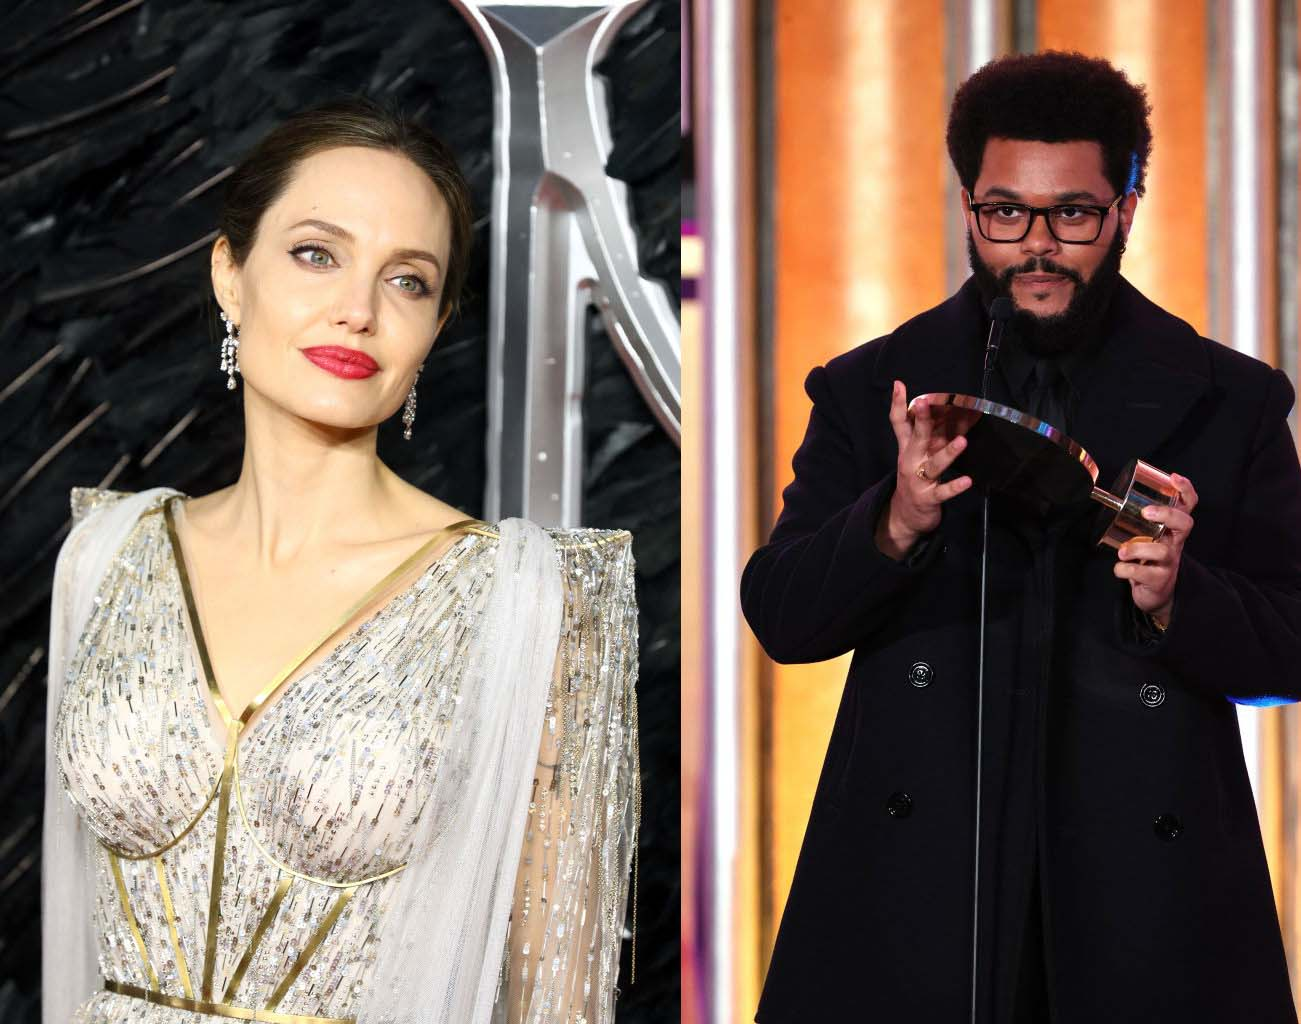 Are Angelina Jolie and The Weeknd Really Dating? Couple Was Caught Sharing a Car Home After Romantic Italian Dinner [REPORT]